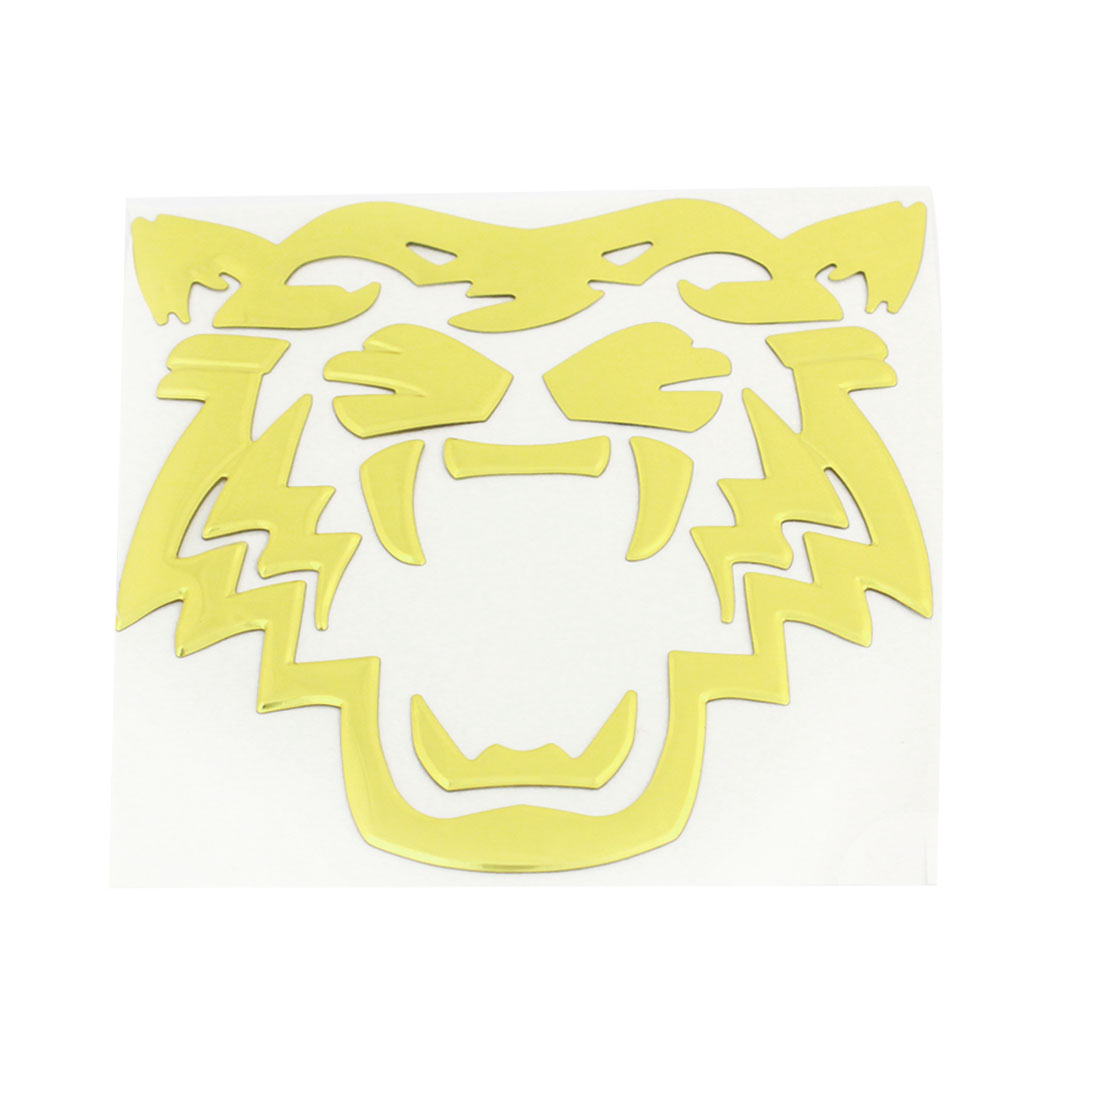 Gold Tone Tiger Pattern Plastic Self Adhesive 3D Sticker Decal Ornament for Car